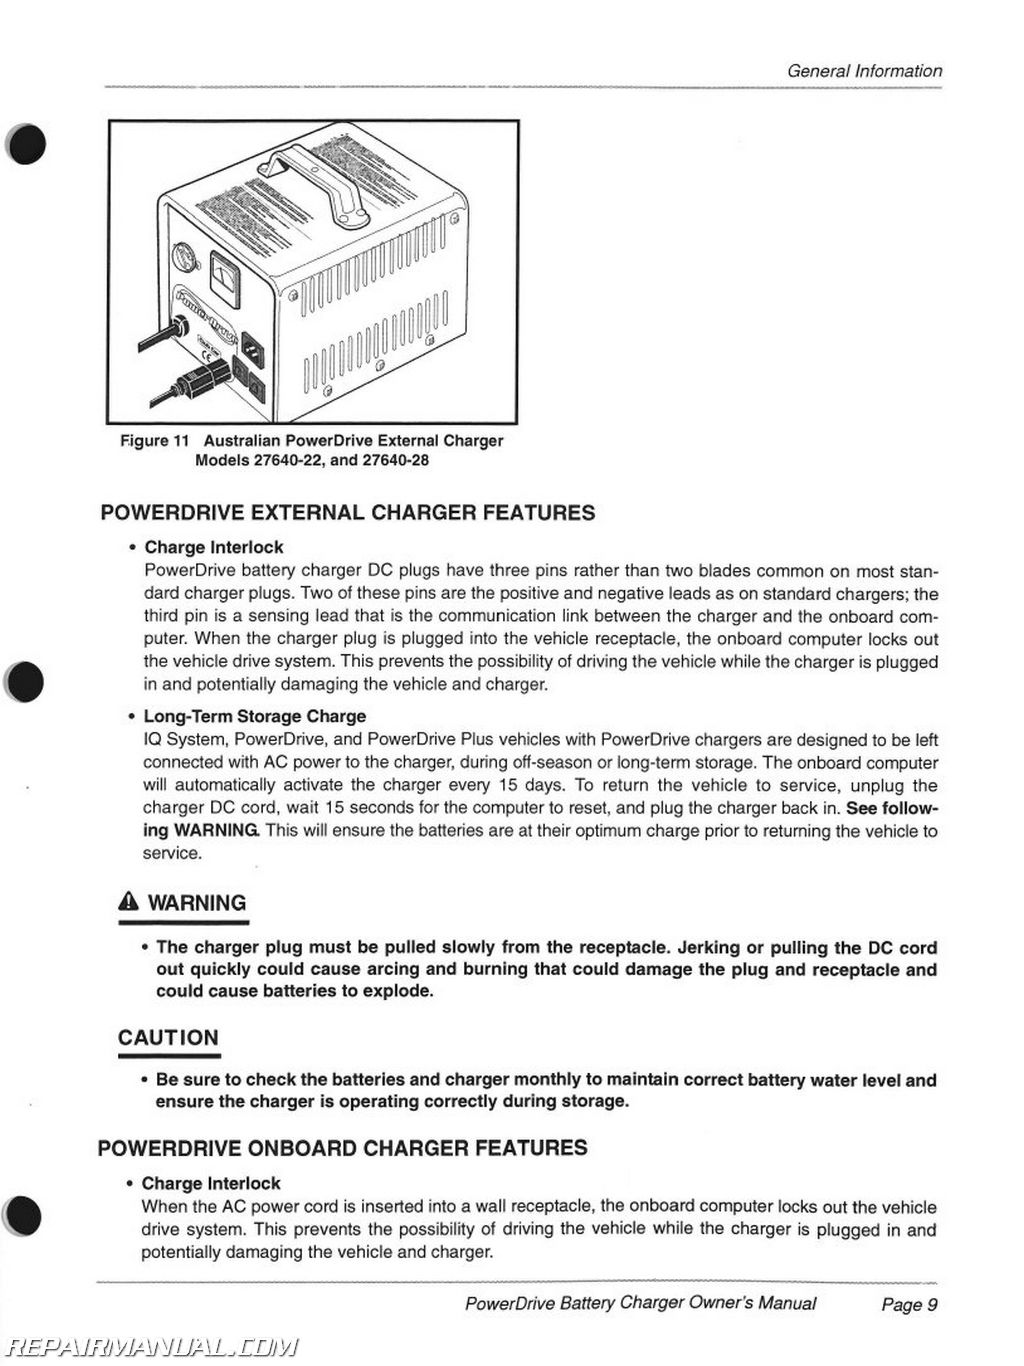 Club Car Domestic And Export Iq Plus Battery Charger Owners Manual Wiring Diagram